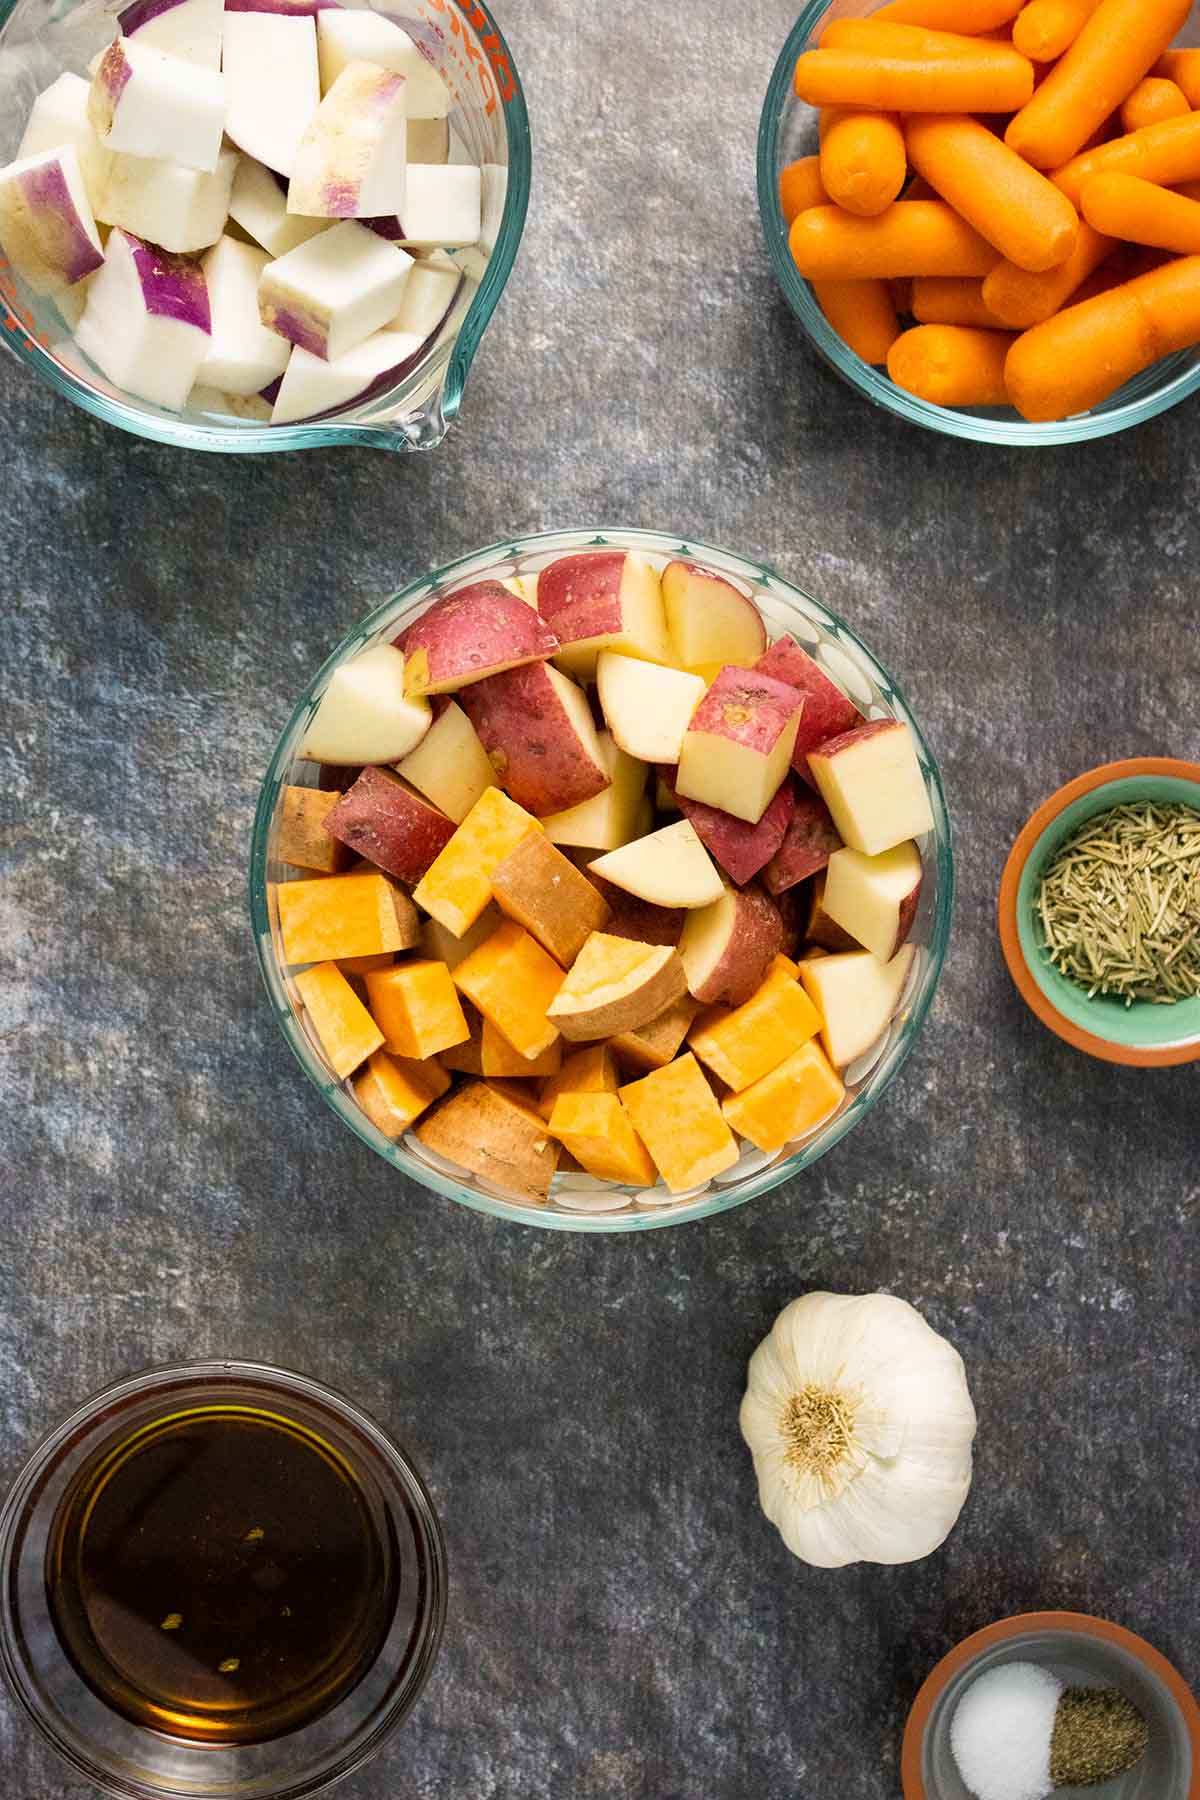 diced root vegetables in glass bowls with other ingredients on a granite countertop